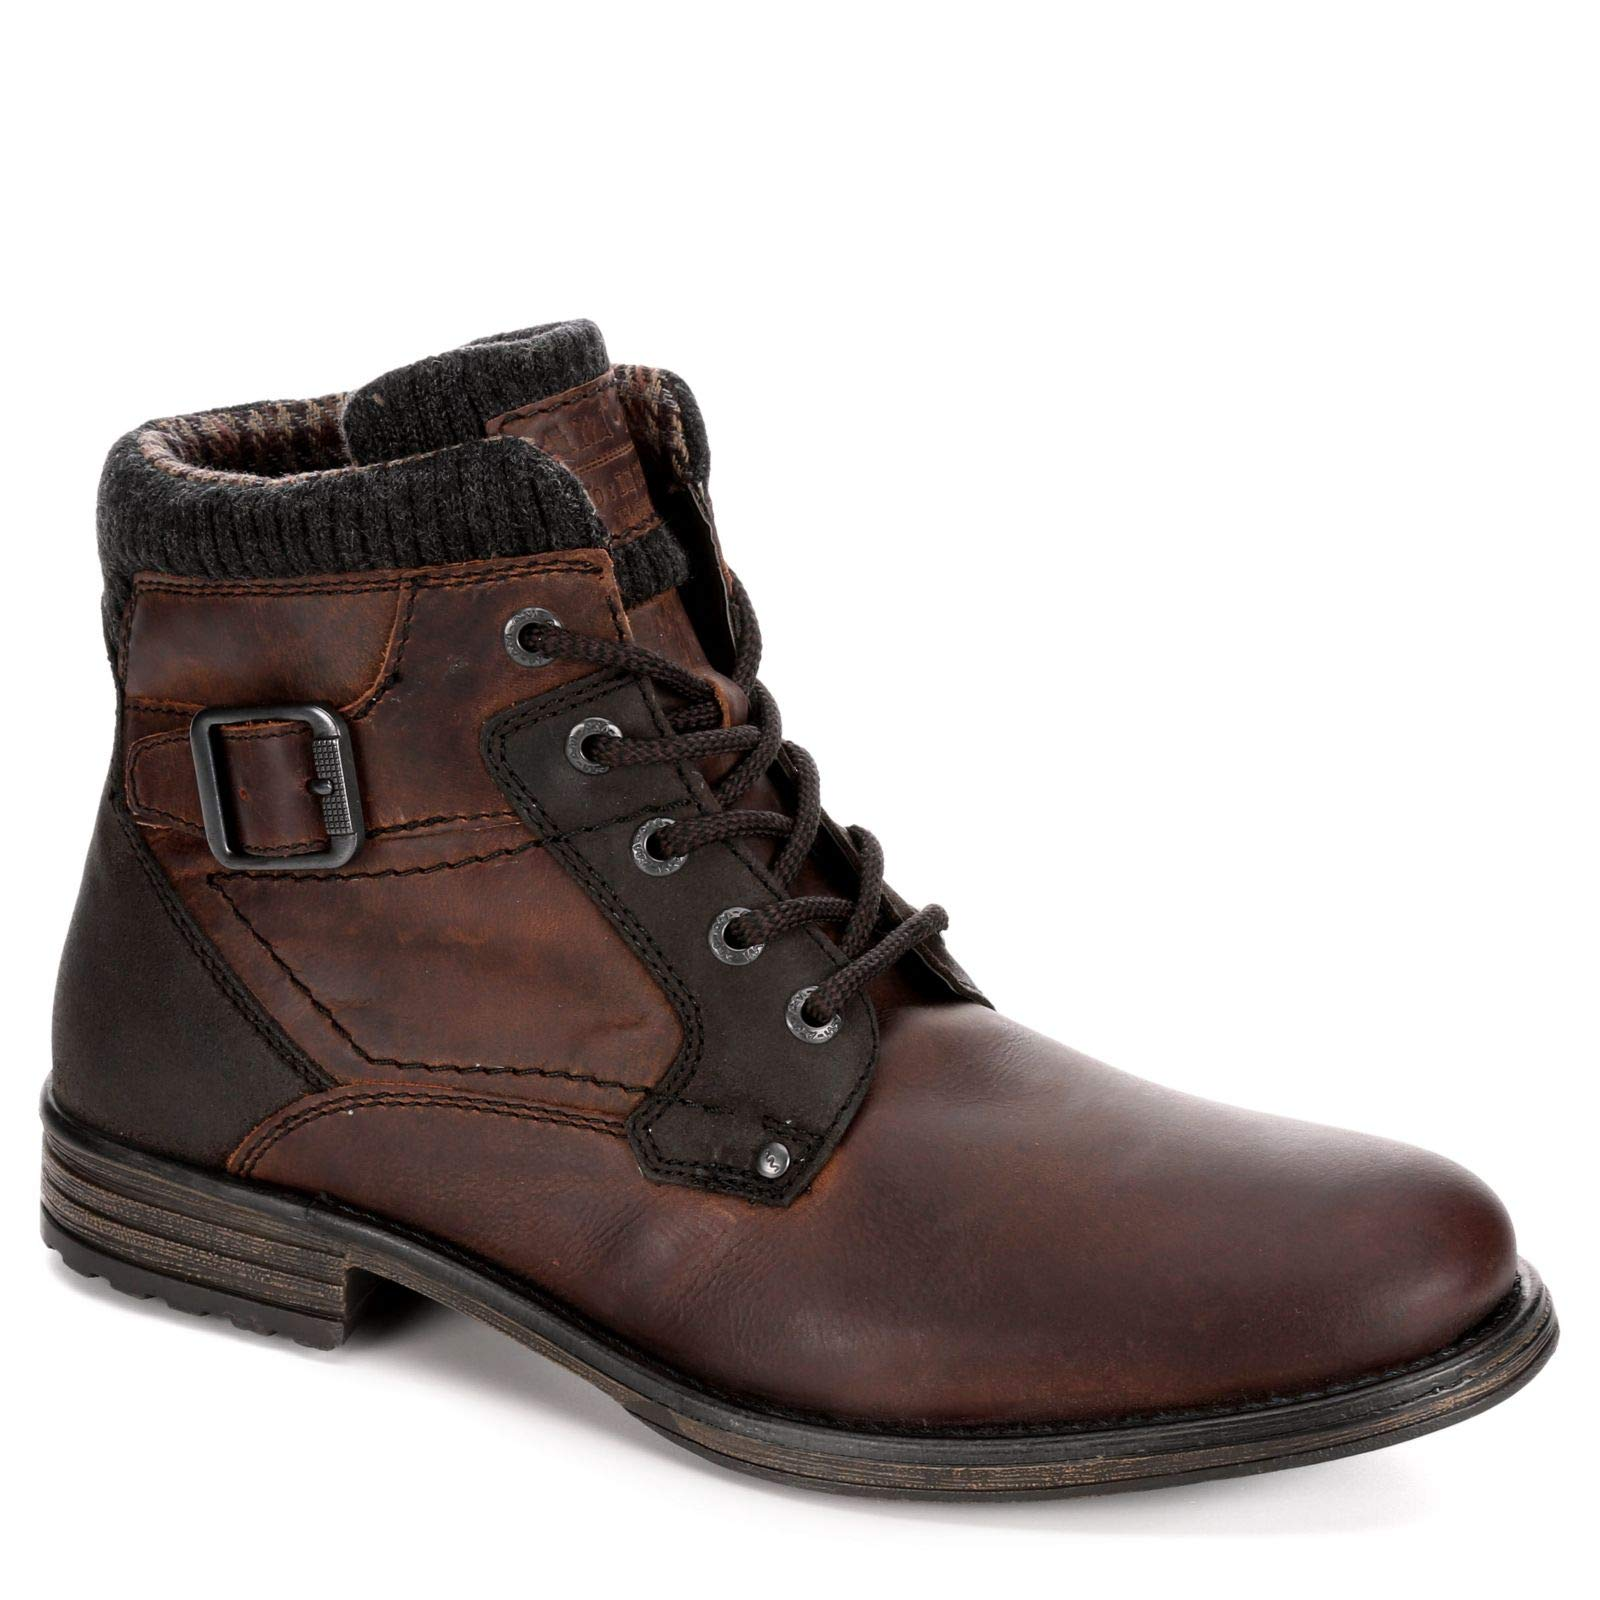 AM Shoes Mens Leather Plain Toe Lace Up Boot Shoes, Dark Brown, US 10 by AM Shoes